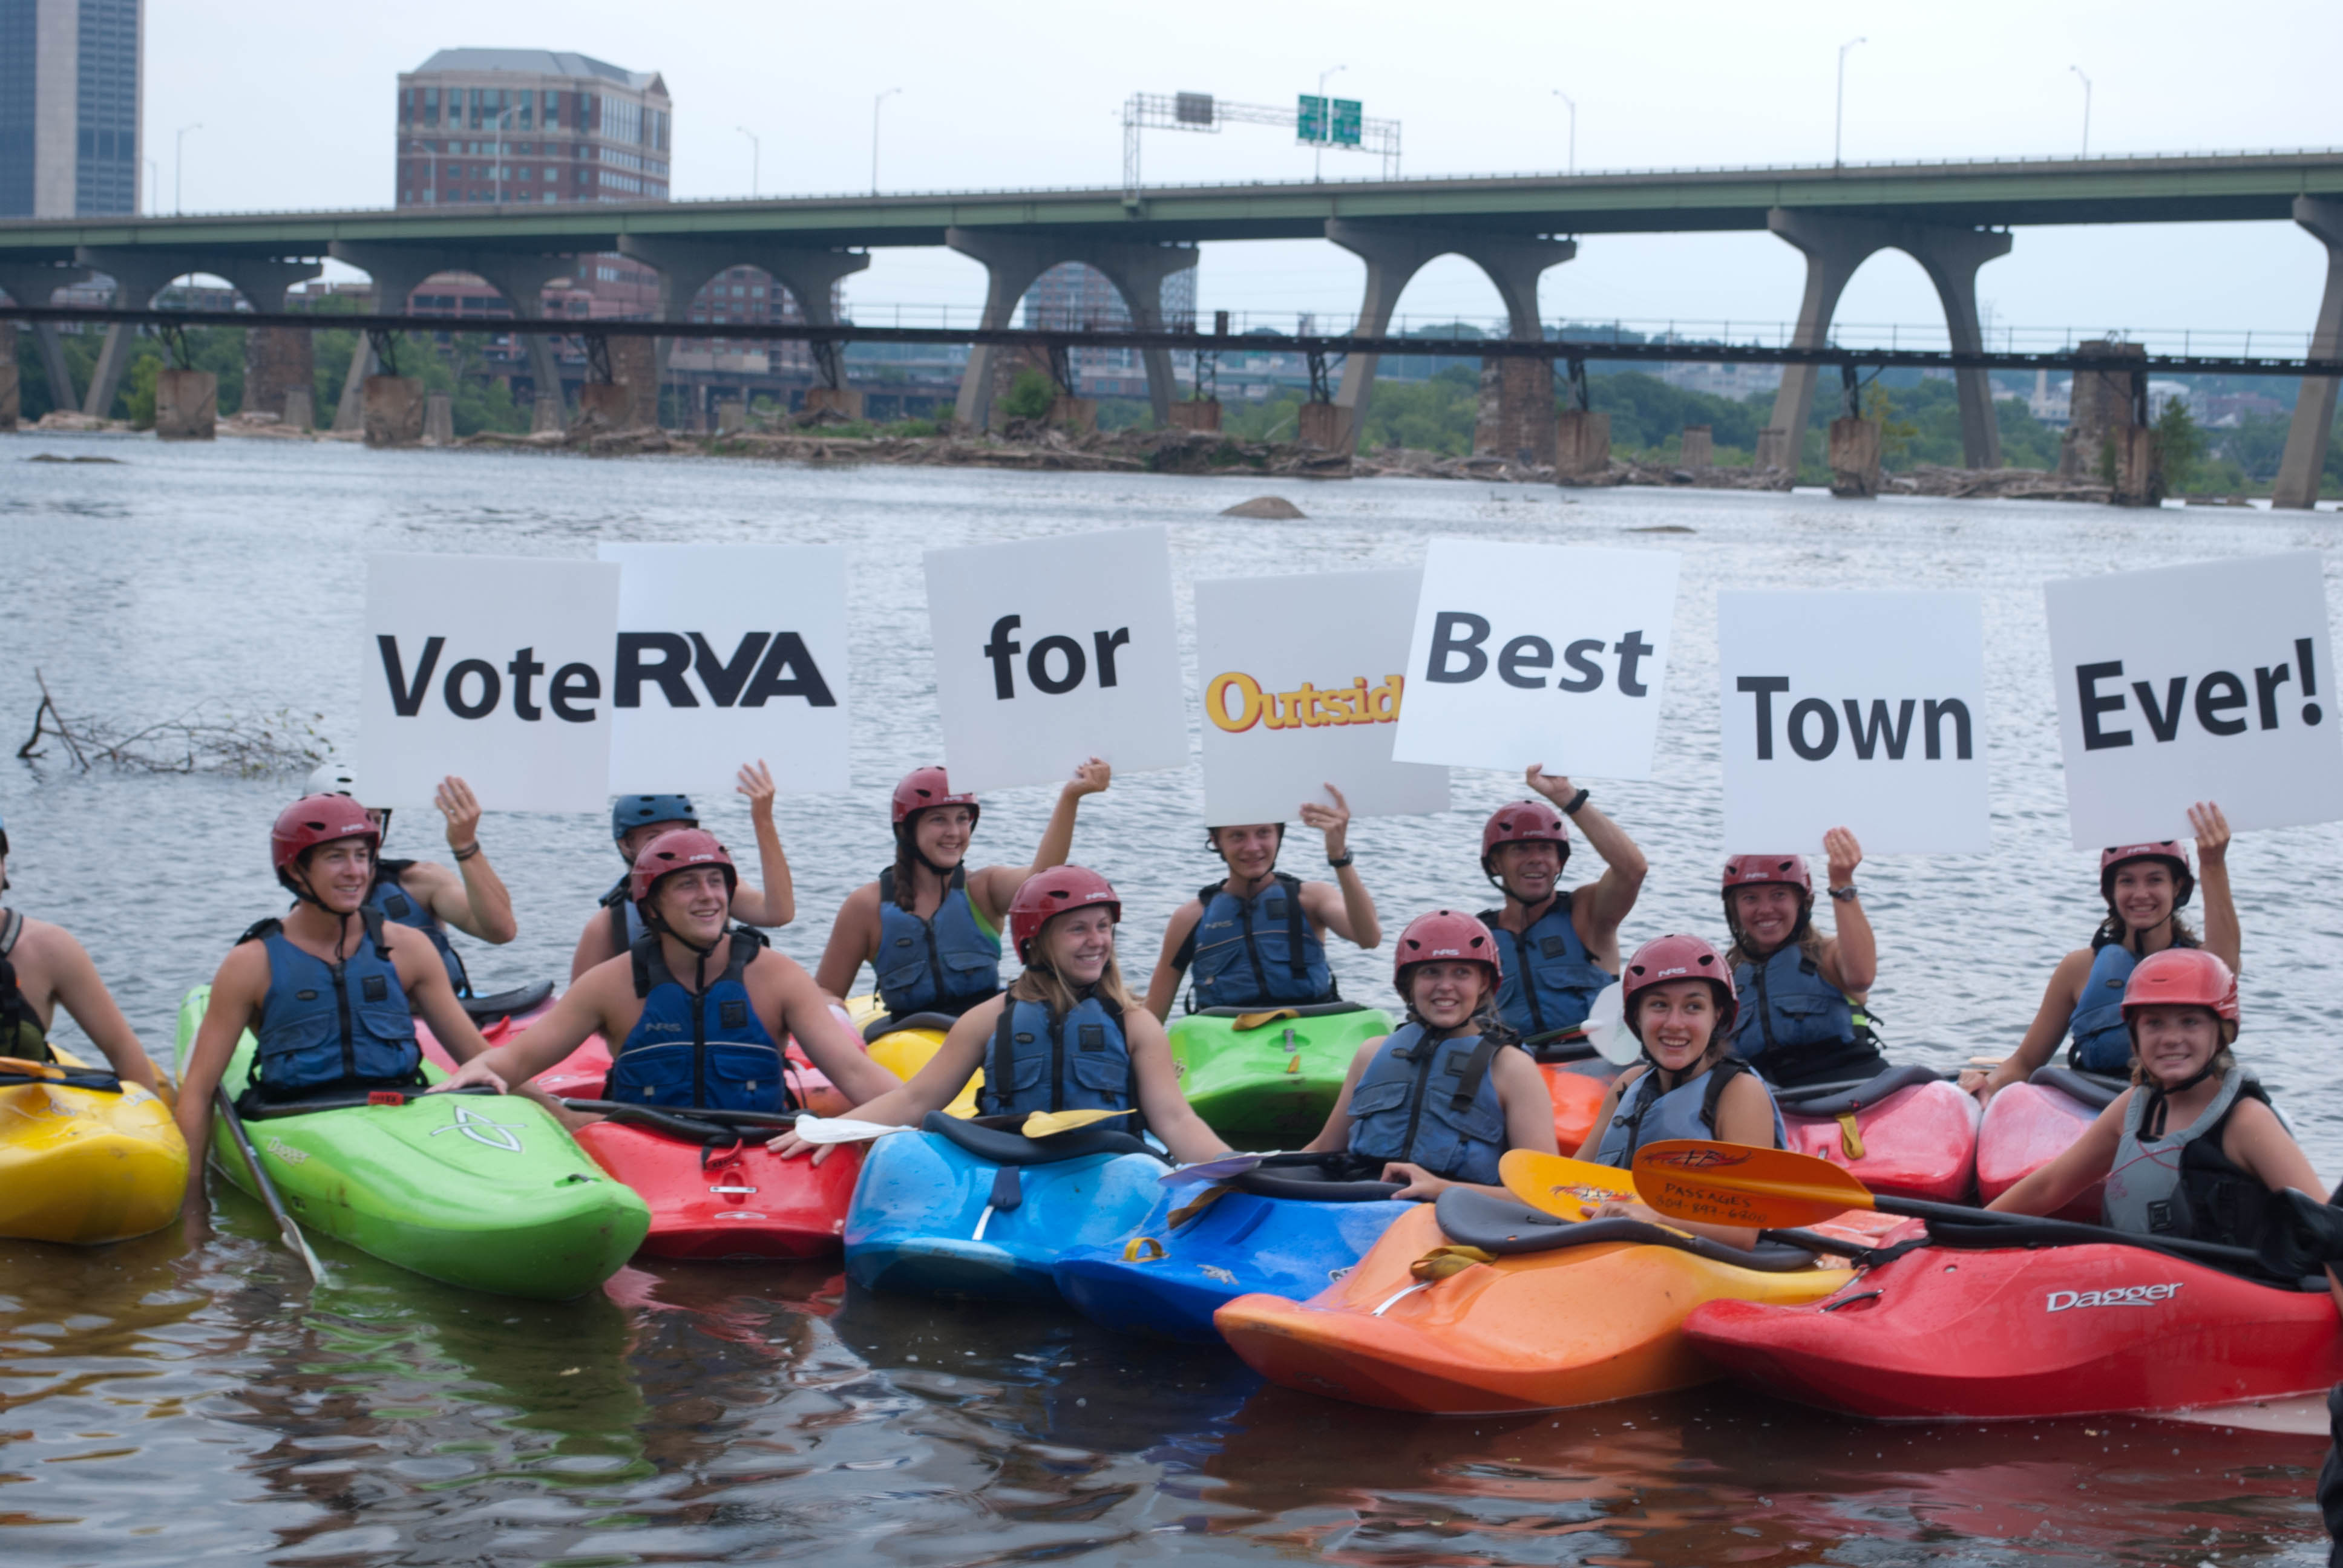 Kayakers support the Best Town Ever (4)